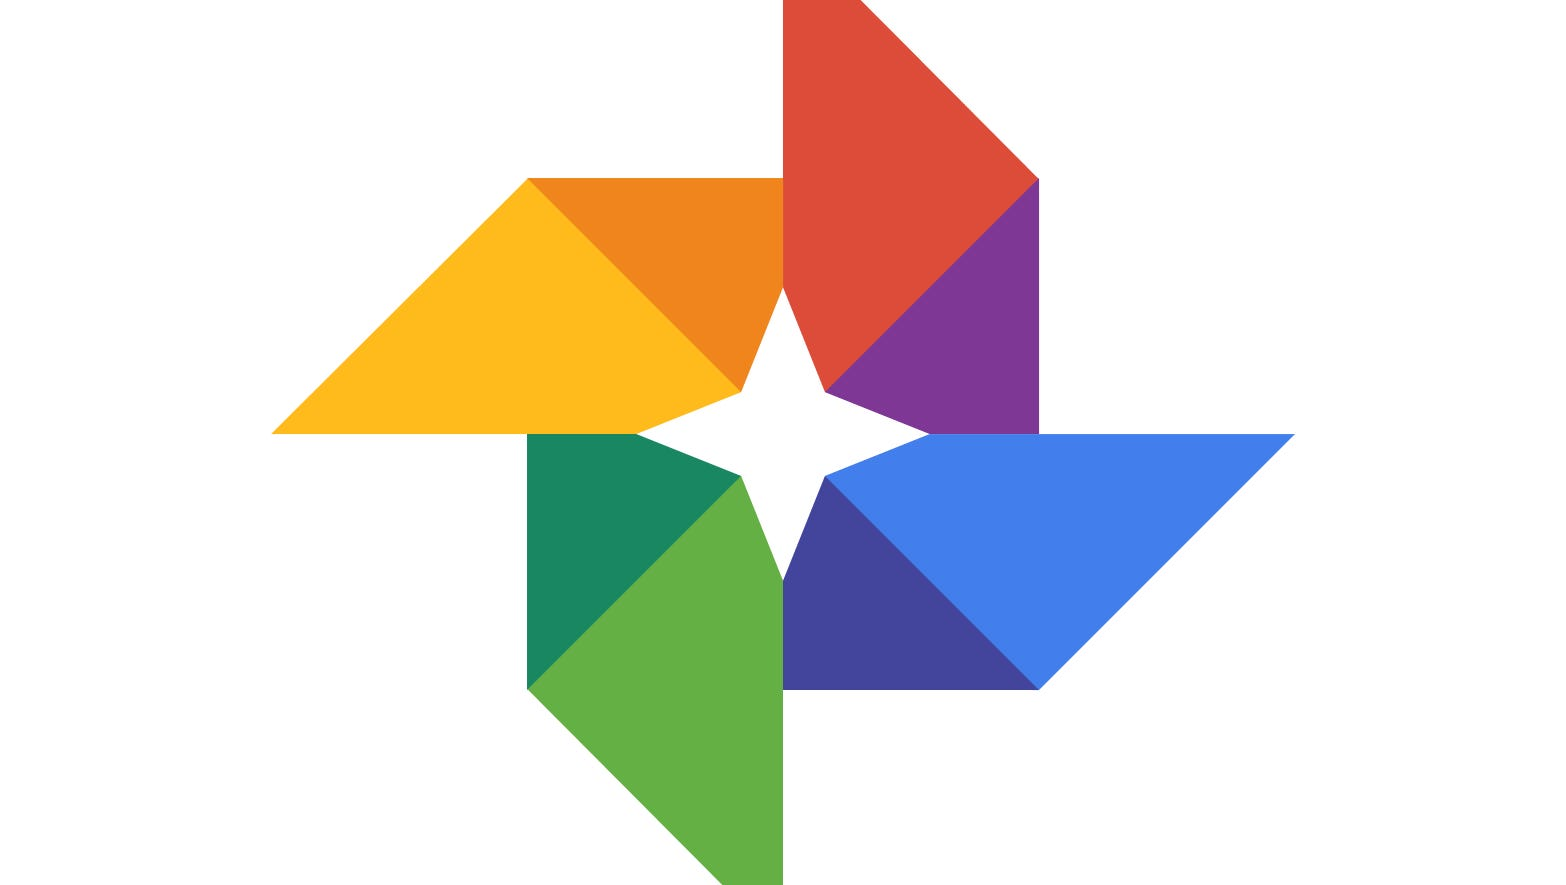 Google Photos will let you pick different Material You shapes for widgets